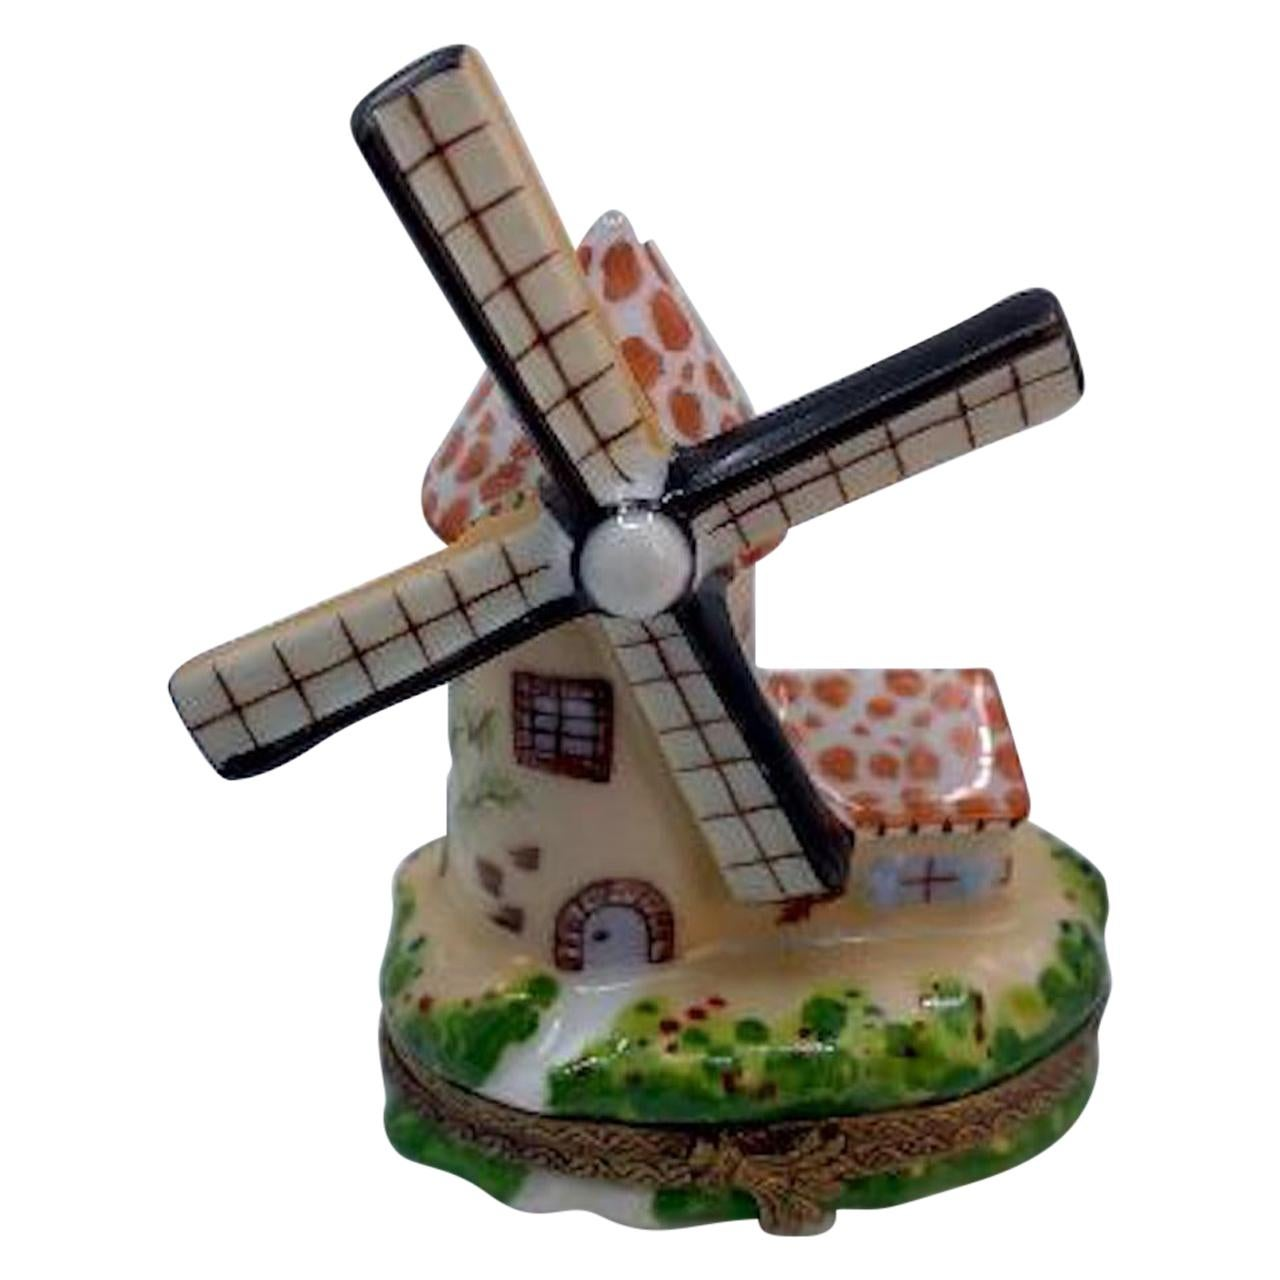 Very Detailed Limoges France Hand Painted Dutch Windmill Porcelain Trinket Box